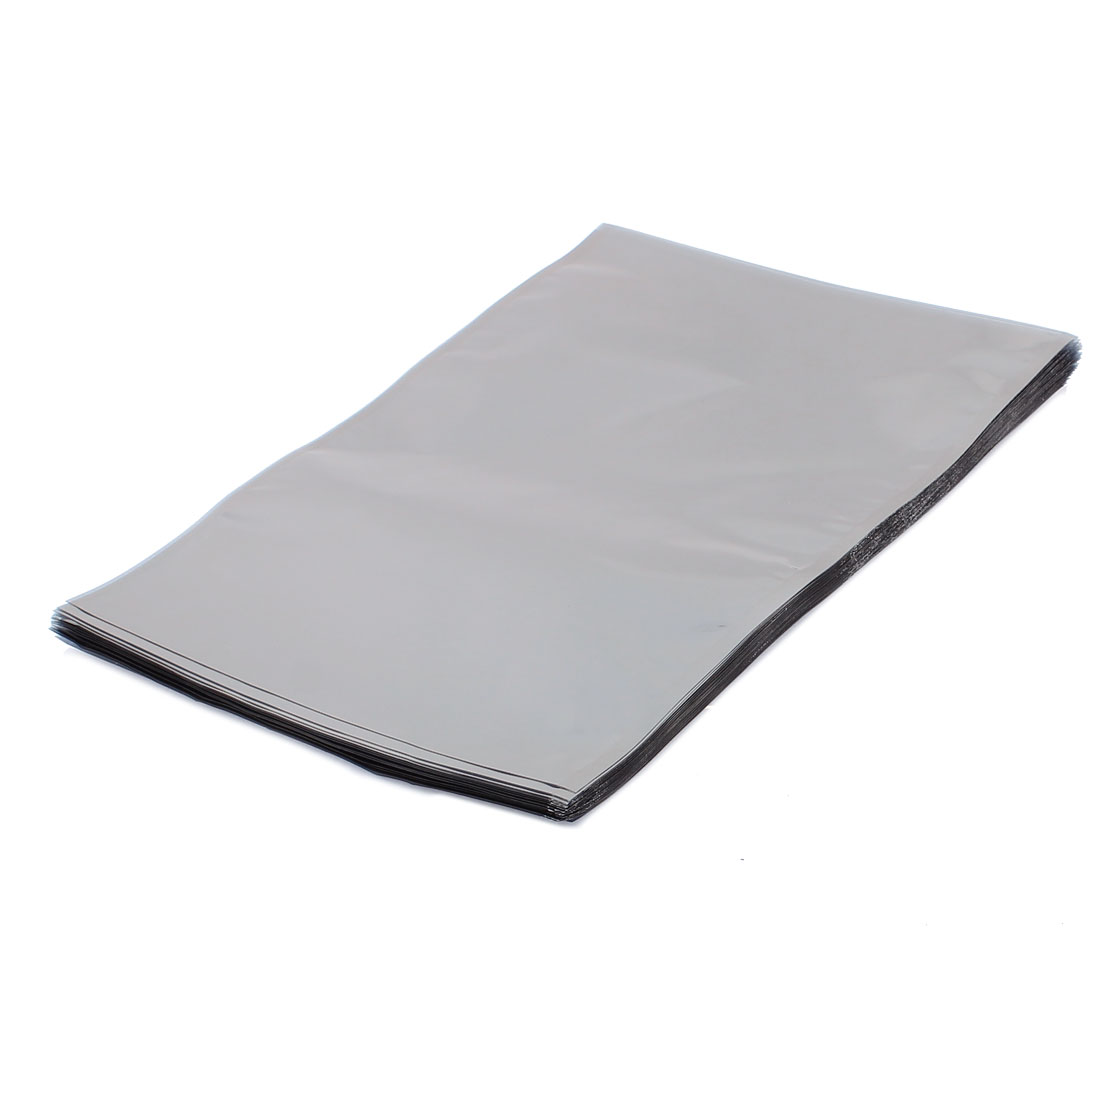 50 Pcs 180mm x 260mm Silver Tone Flat Open Top Anti Static Bag For Electronics